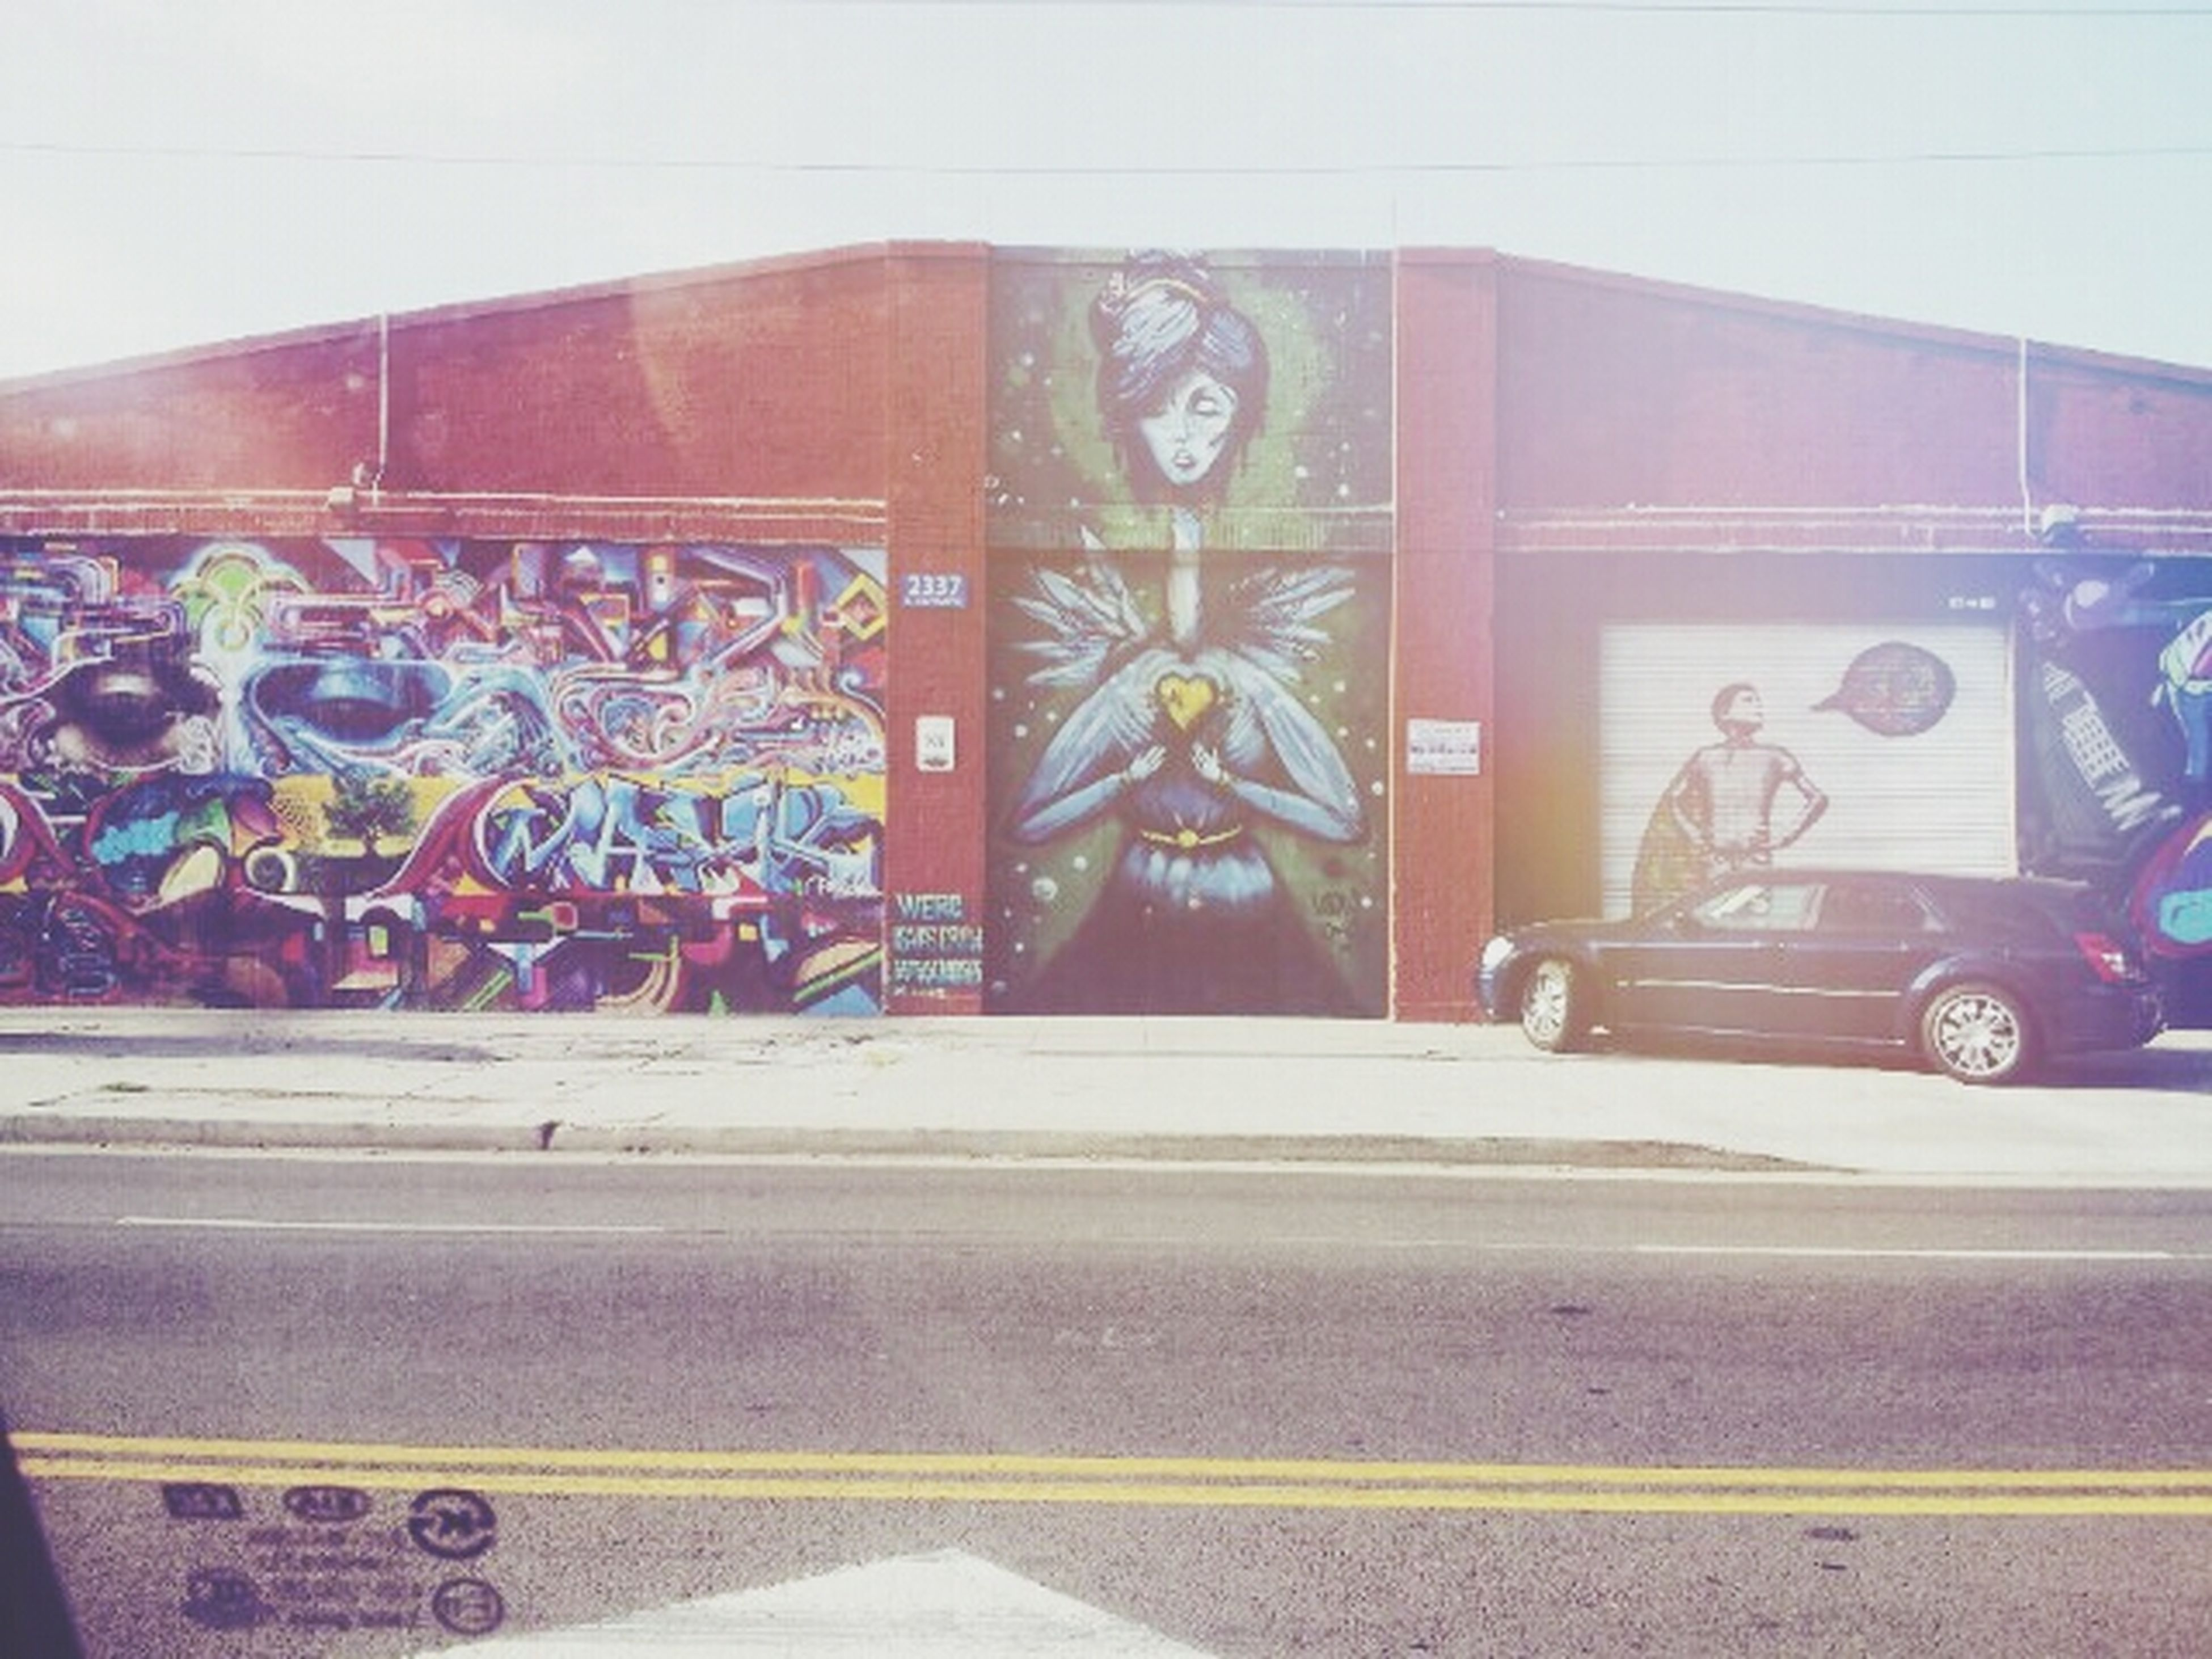 art and craft, art, creativity, graffiti, architecture, built structure, human representation, street, building exterior, transportation, text, road, land vehicle, wall - building feature, multi colored, car, street art, western script, outdoors